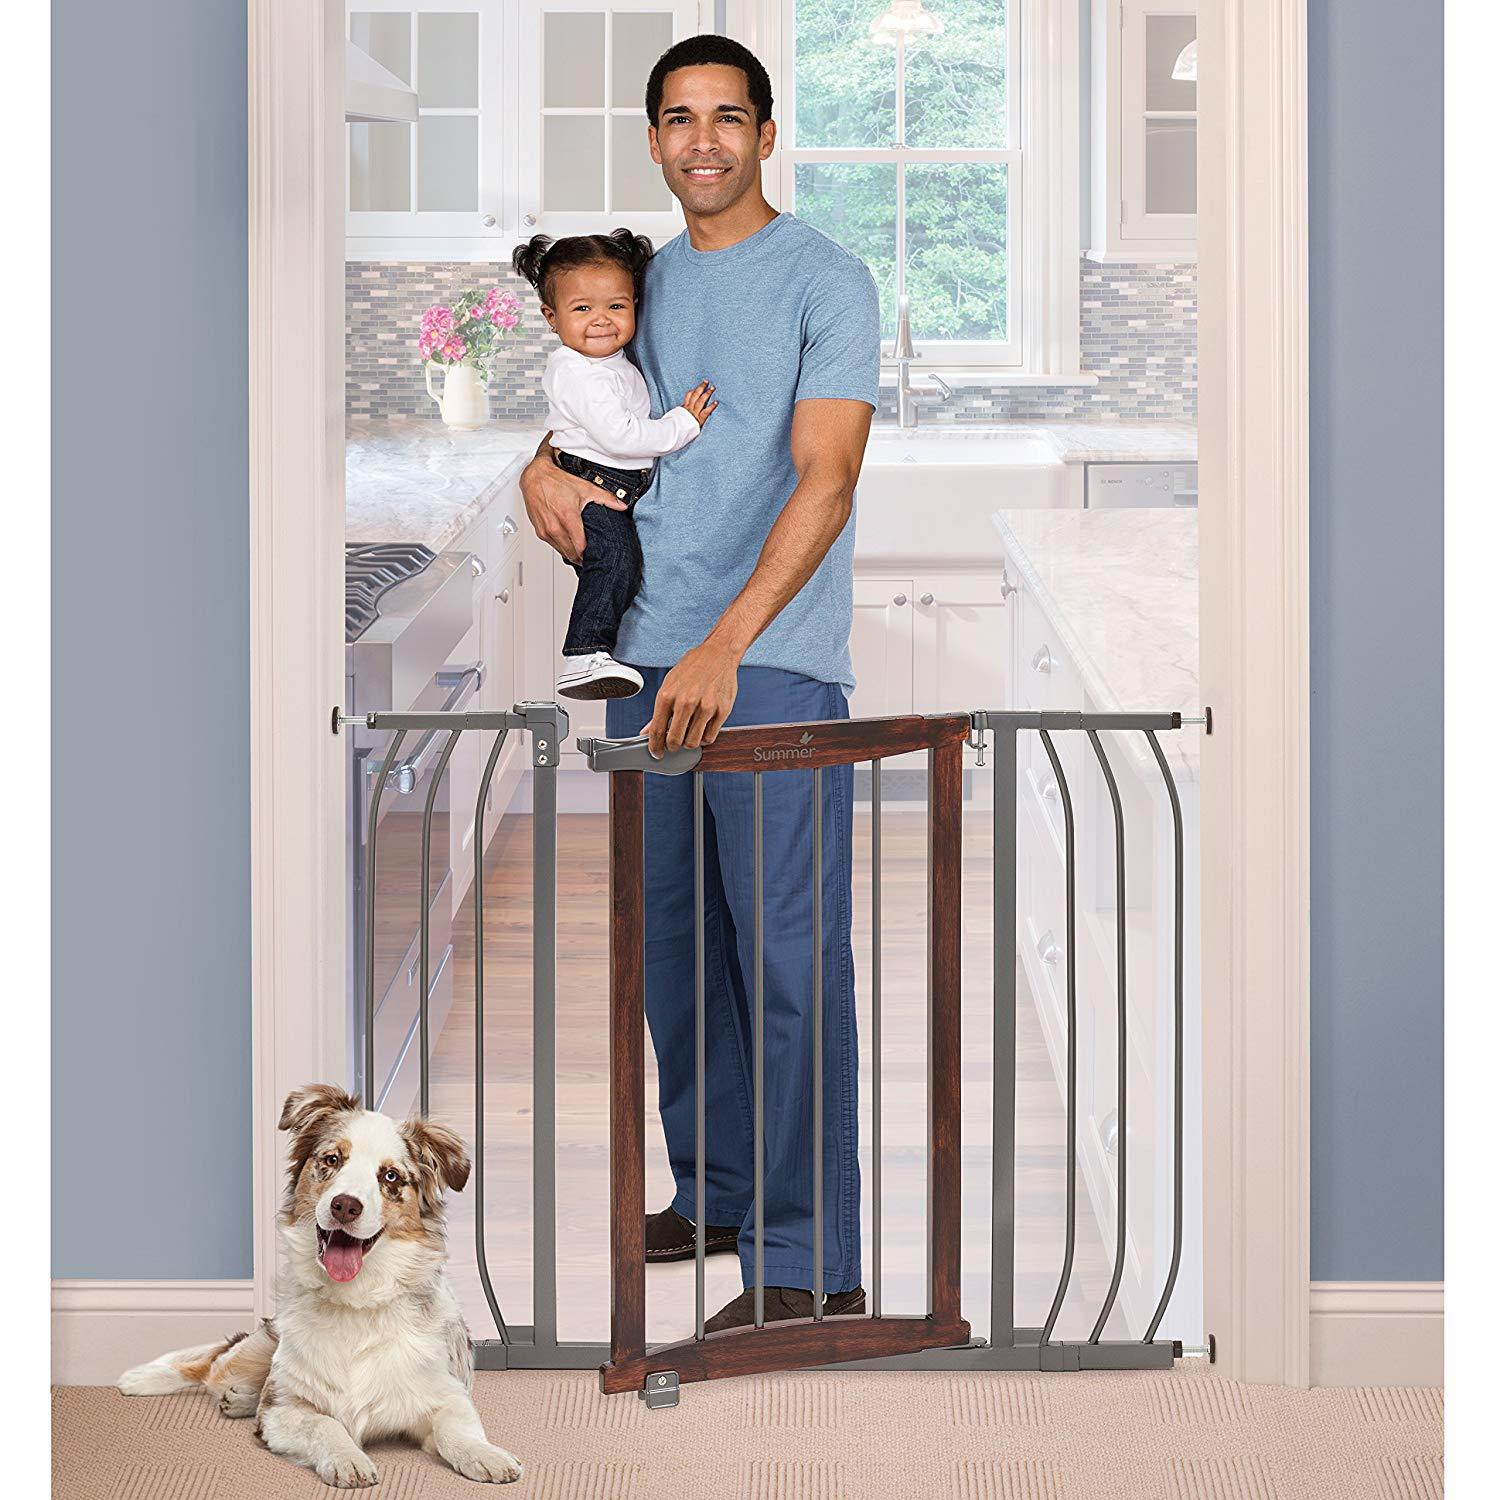 Summer Infant Anywhere Decorative Walk-Thru Gate Review